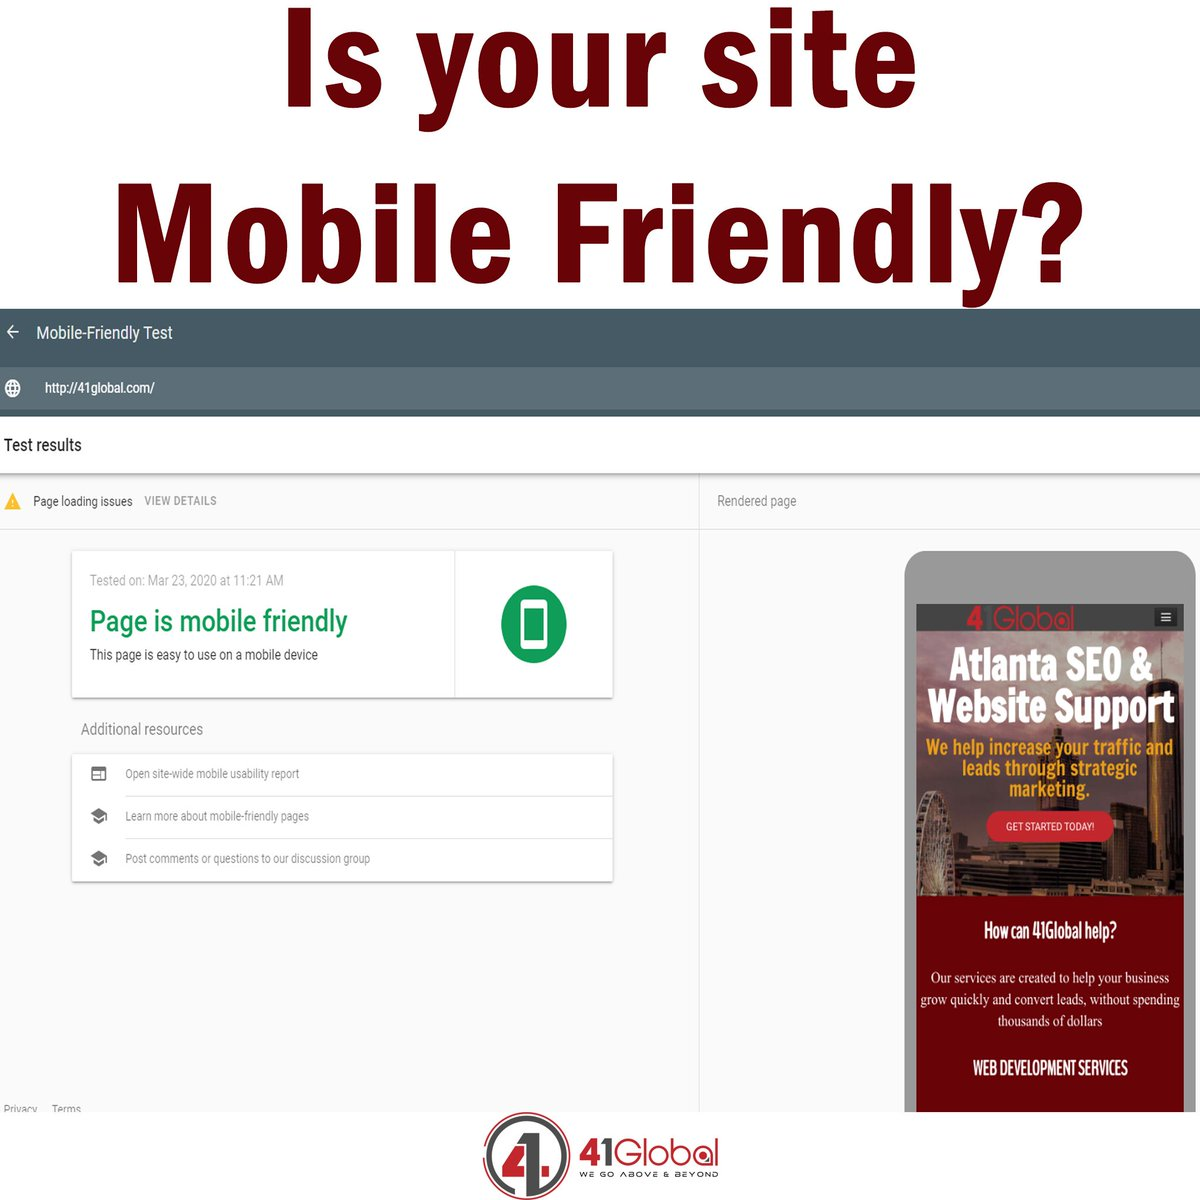 Make sure your site is mobile friendly and ready for visits from mobile devices.  Google has a totally free tool that allows you to confirm - https://t.co/7JBjg44cu5  #41Global #marketing #webdevelopmentcompany #webdesign #mobilefriendly #webdevelopment #responsivedesign https://t.co/jrVgXzST2D